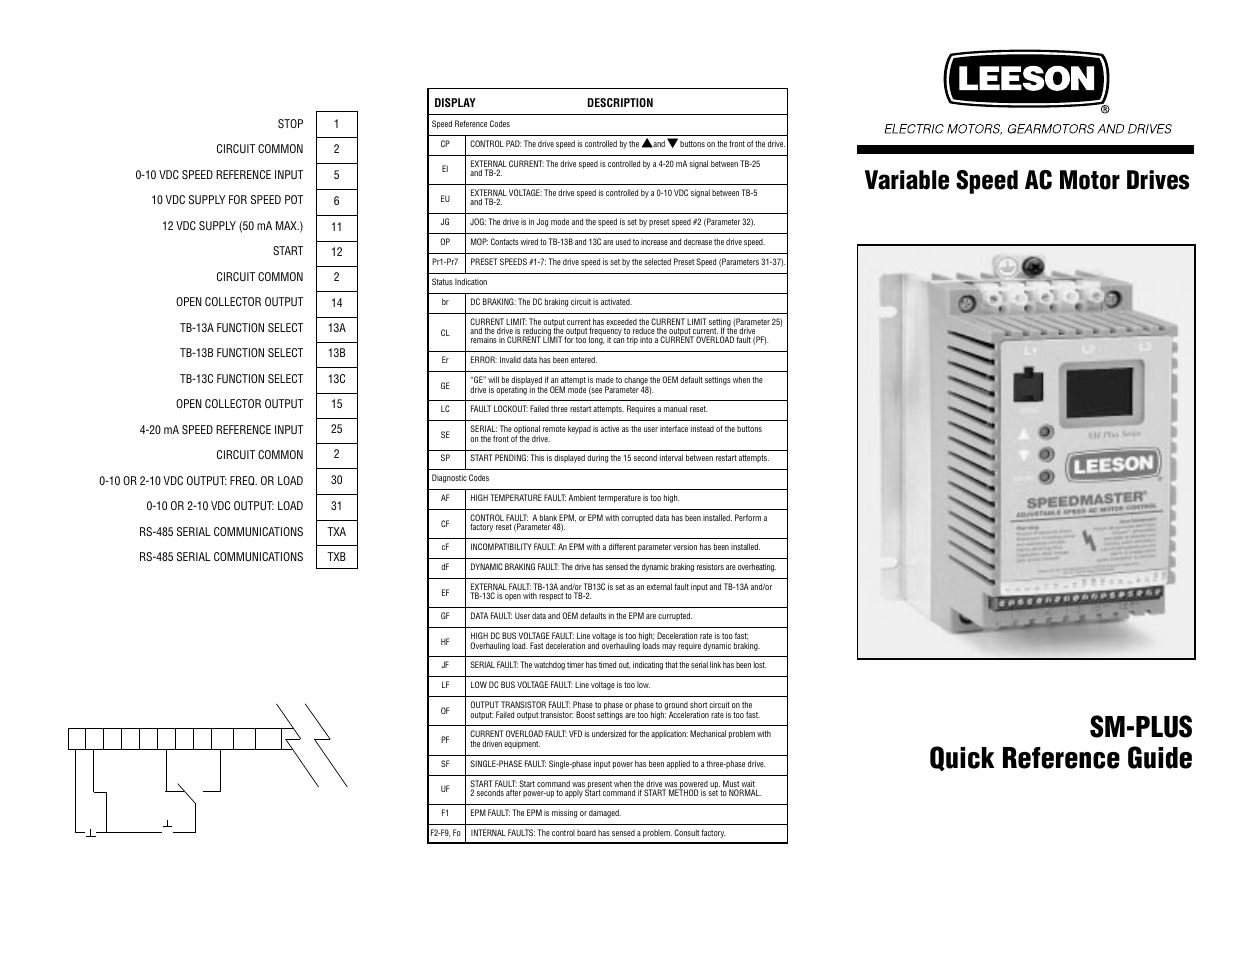 Leeson Sm Plus Series Quick Reference Guide User Manual